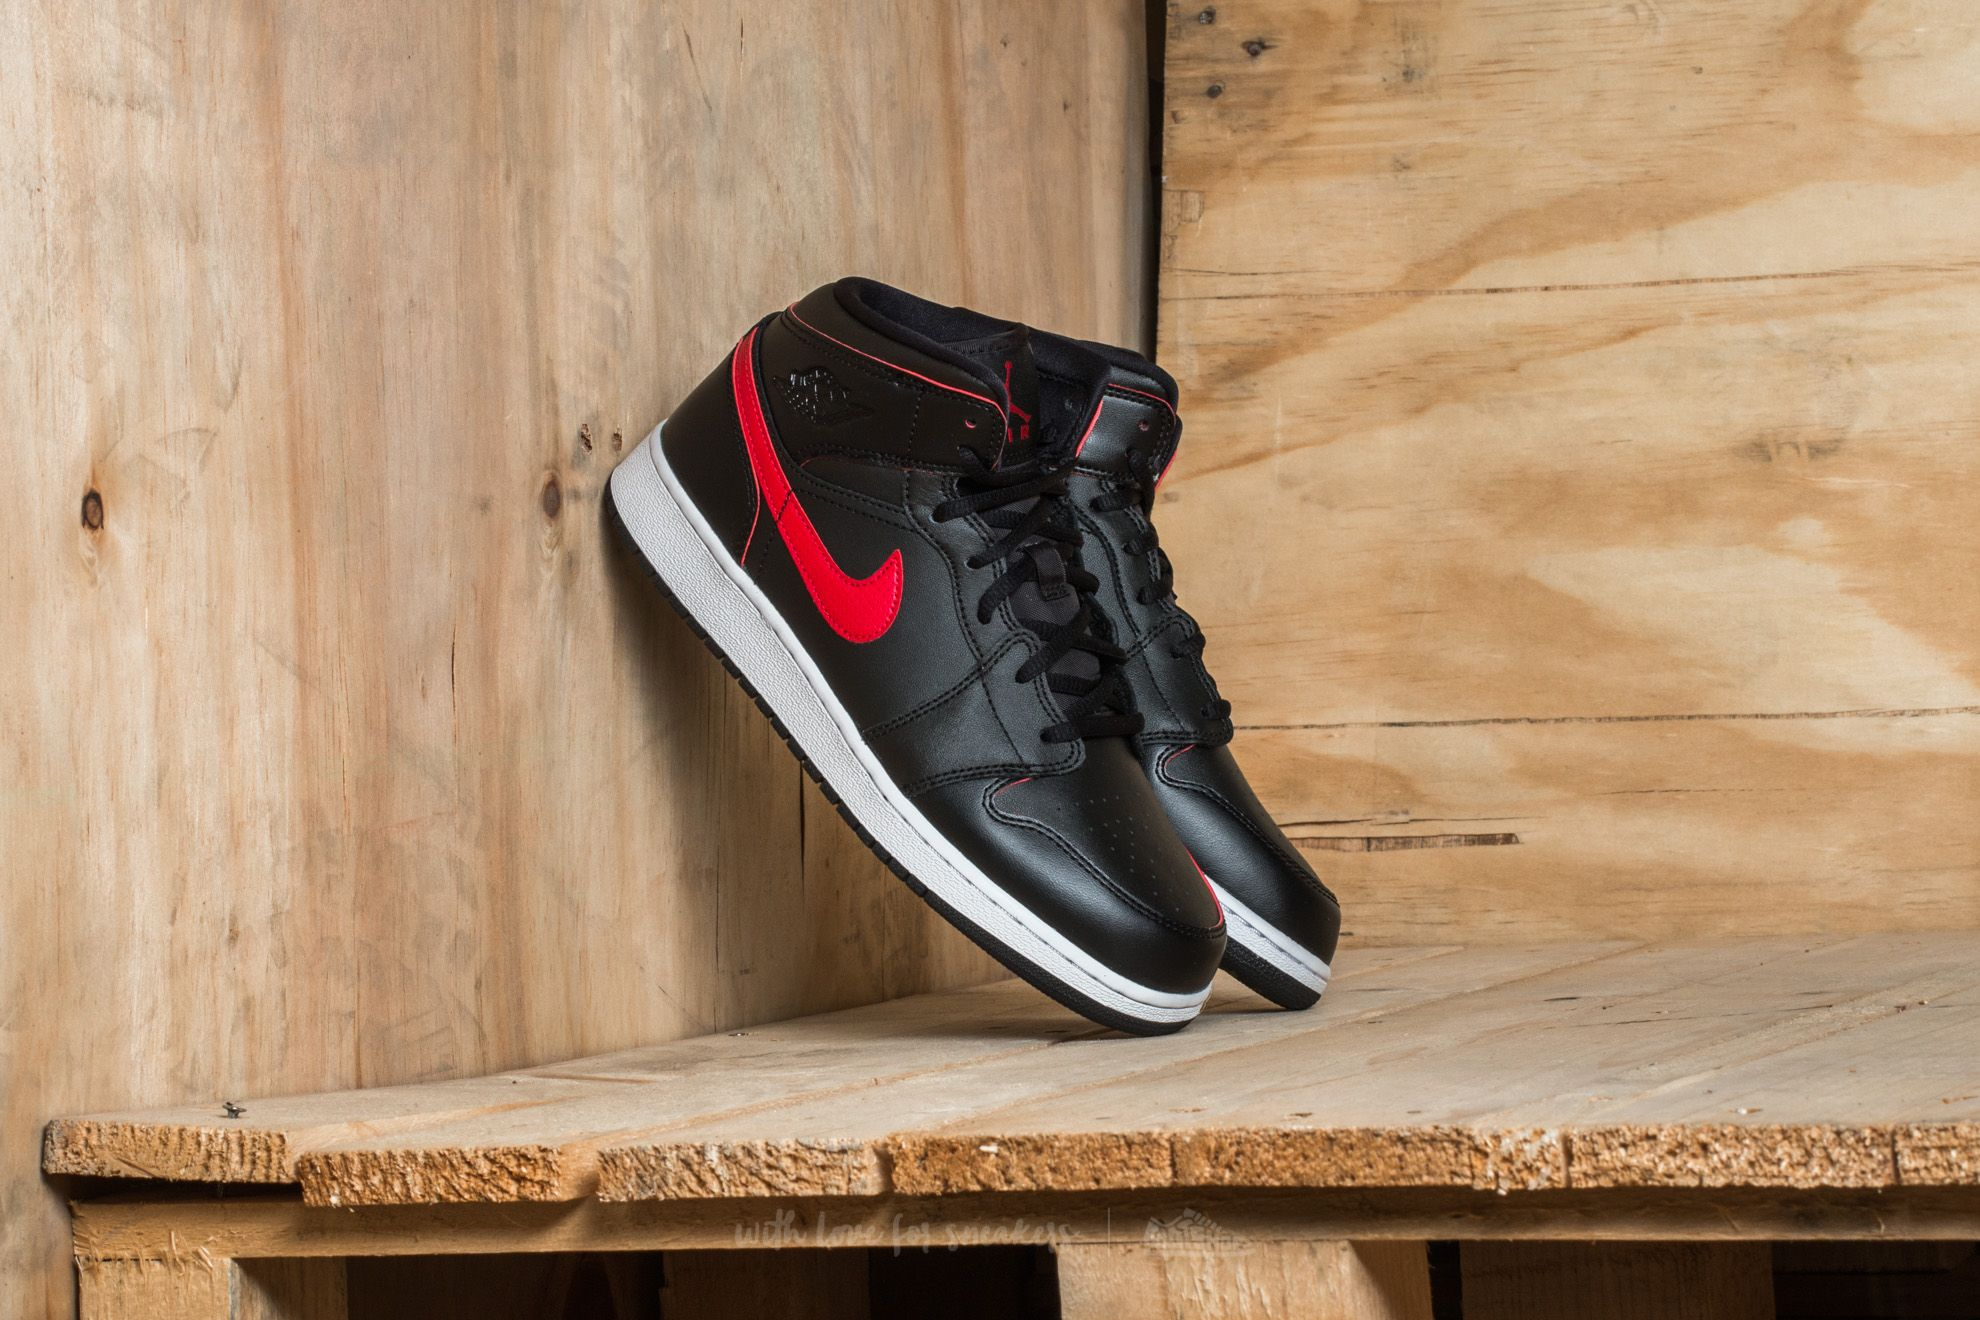 Air Jordan 1 Mid (BG) Black/ Gym Red-Gym Red-White